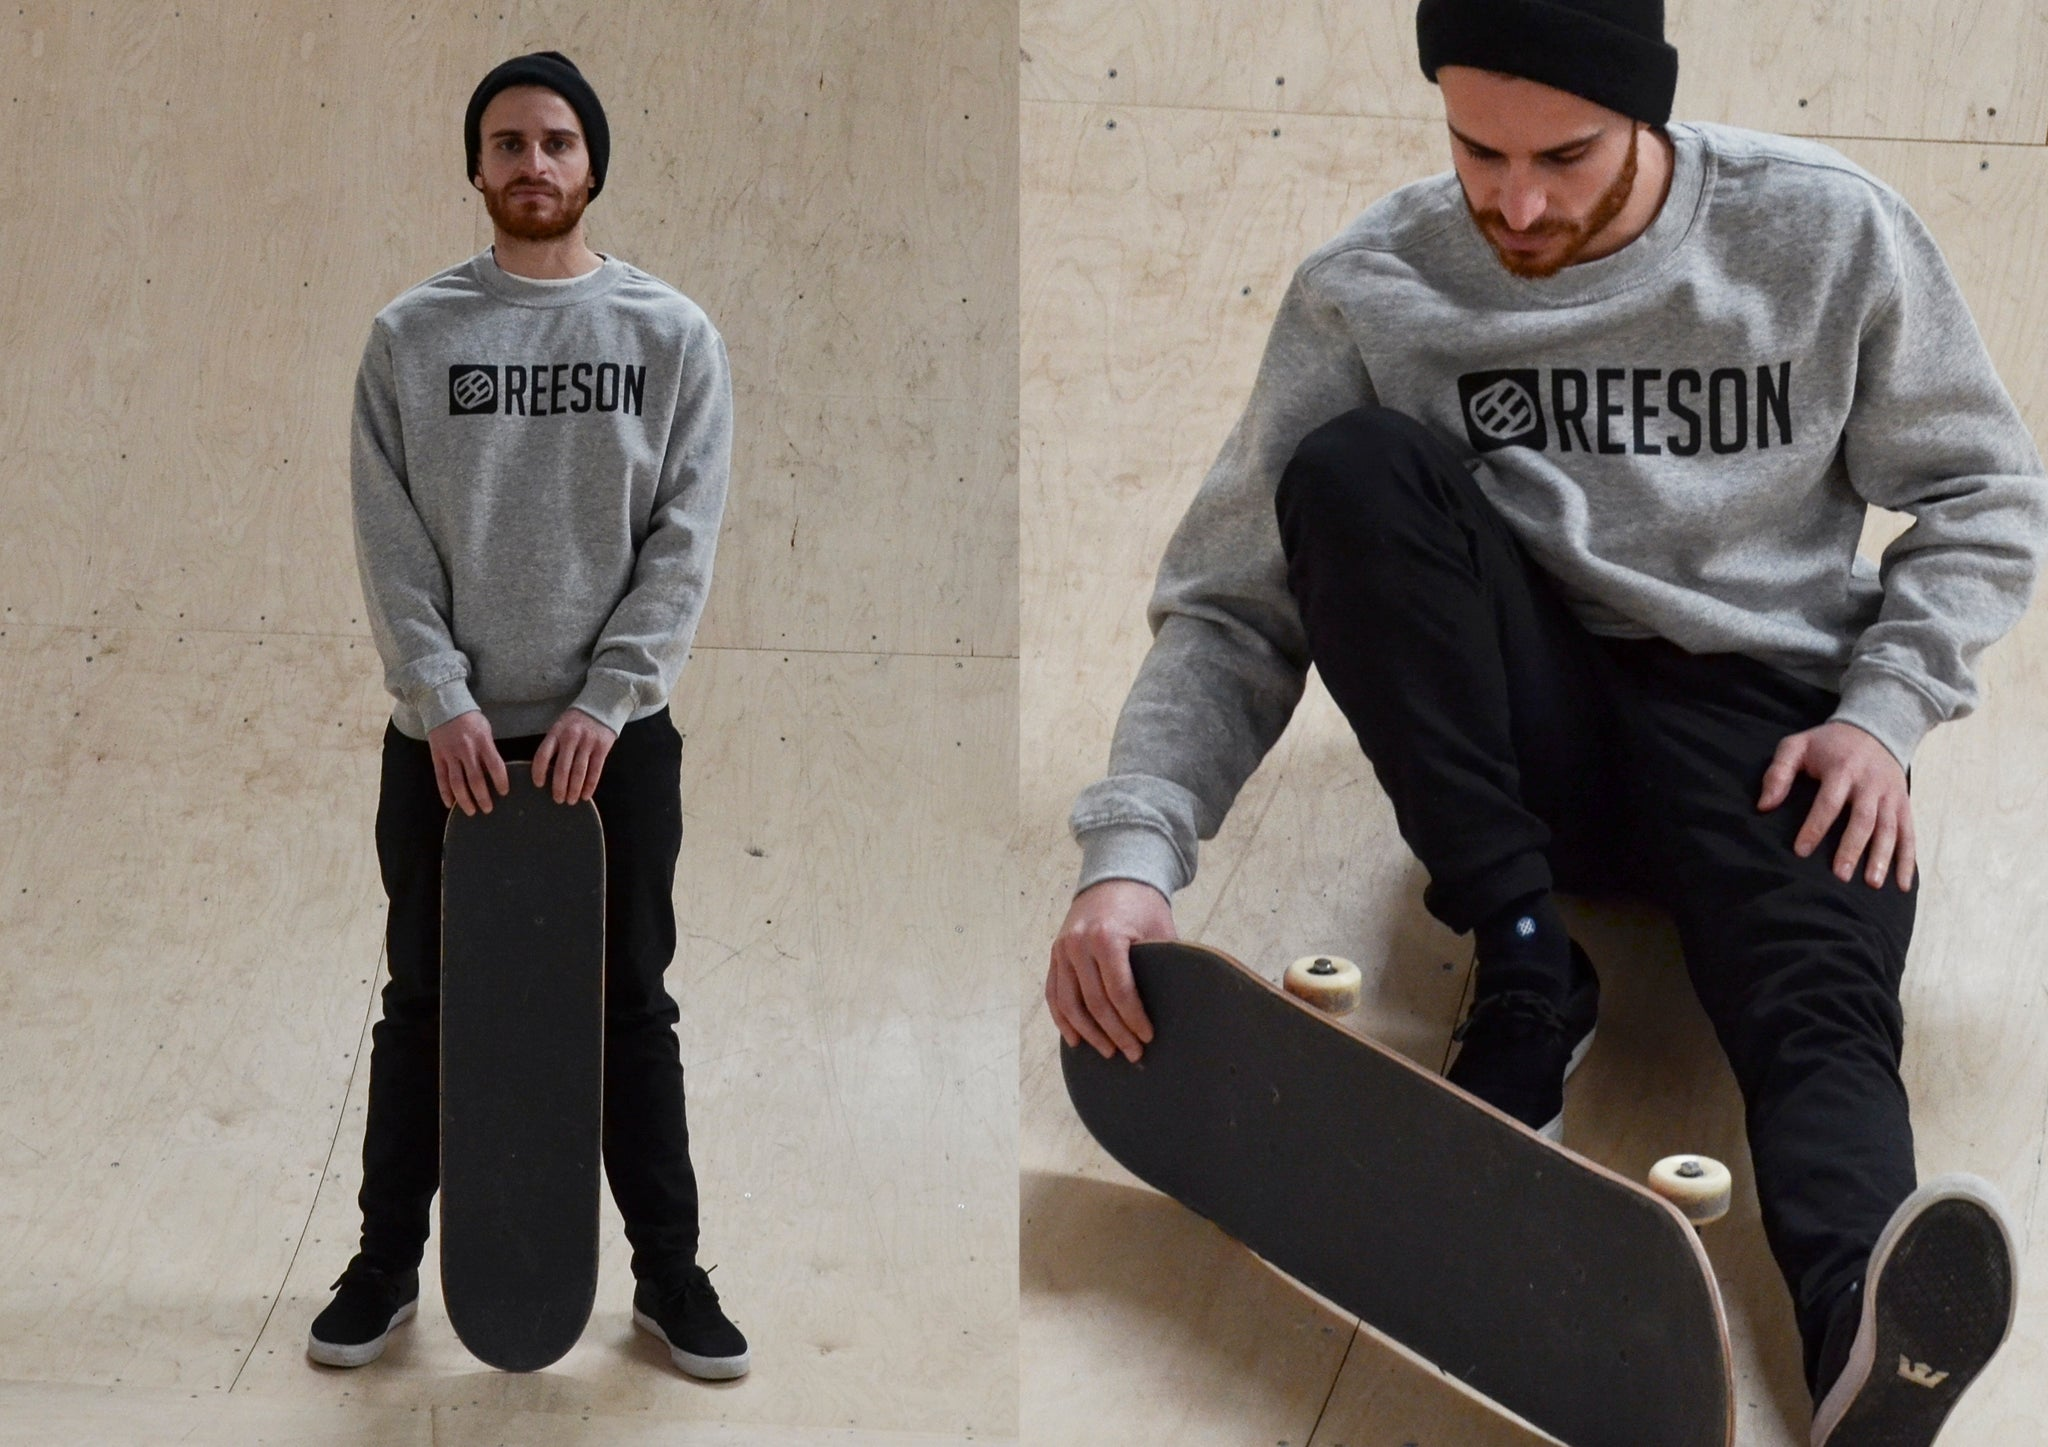 reeson skateboarding surfing lifestyle brand